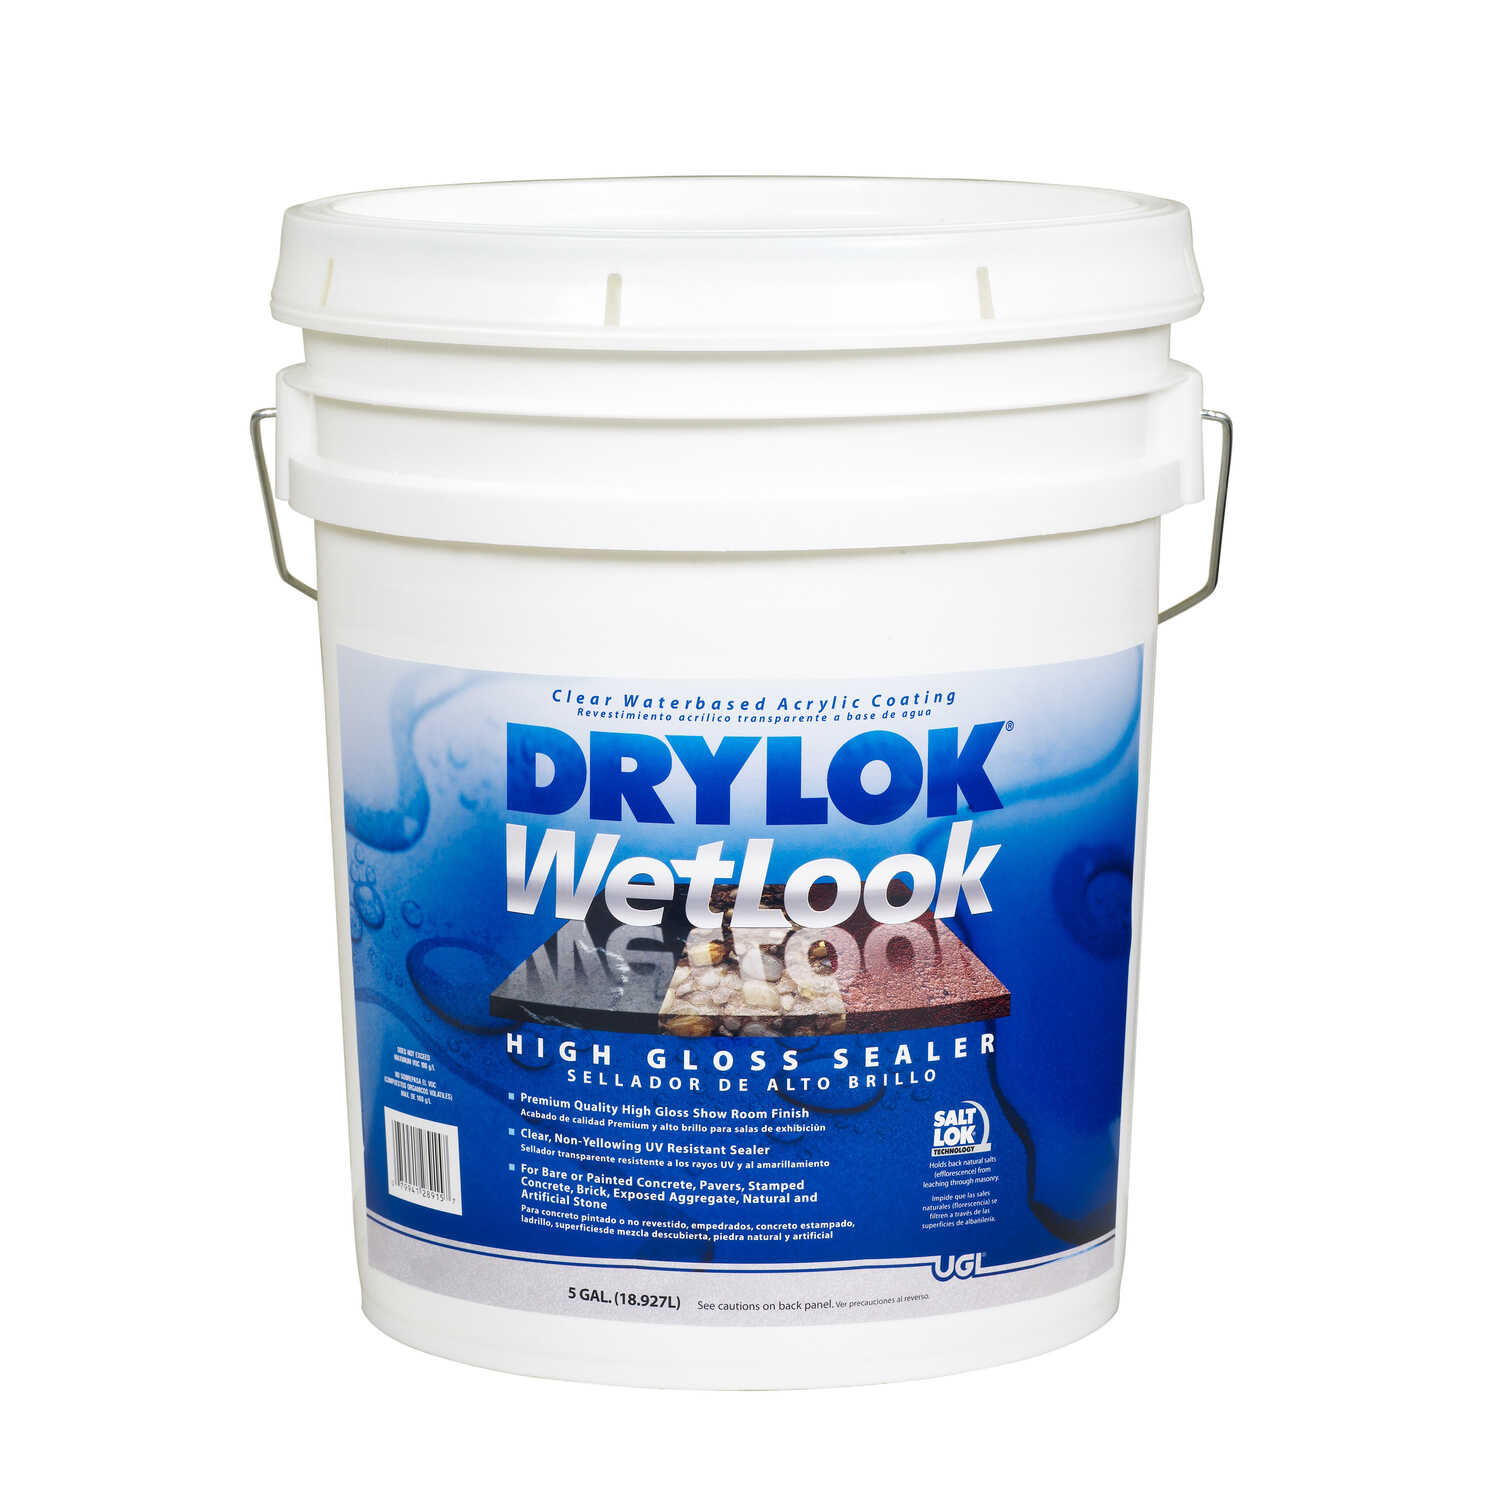 Drylok  WetLook  Clear  Clear  Latex  Concrete And Masonry Sealer  5 gal.